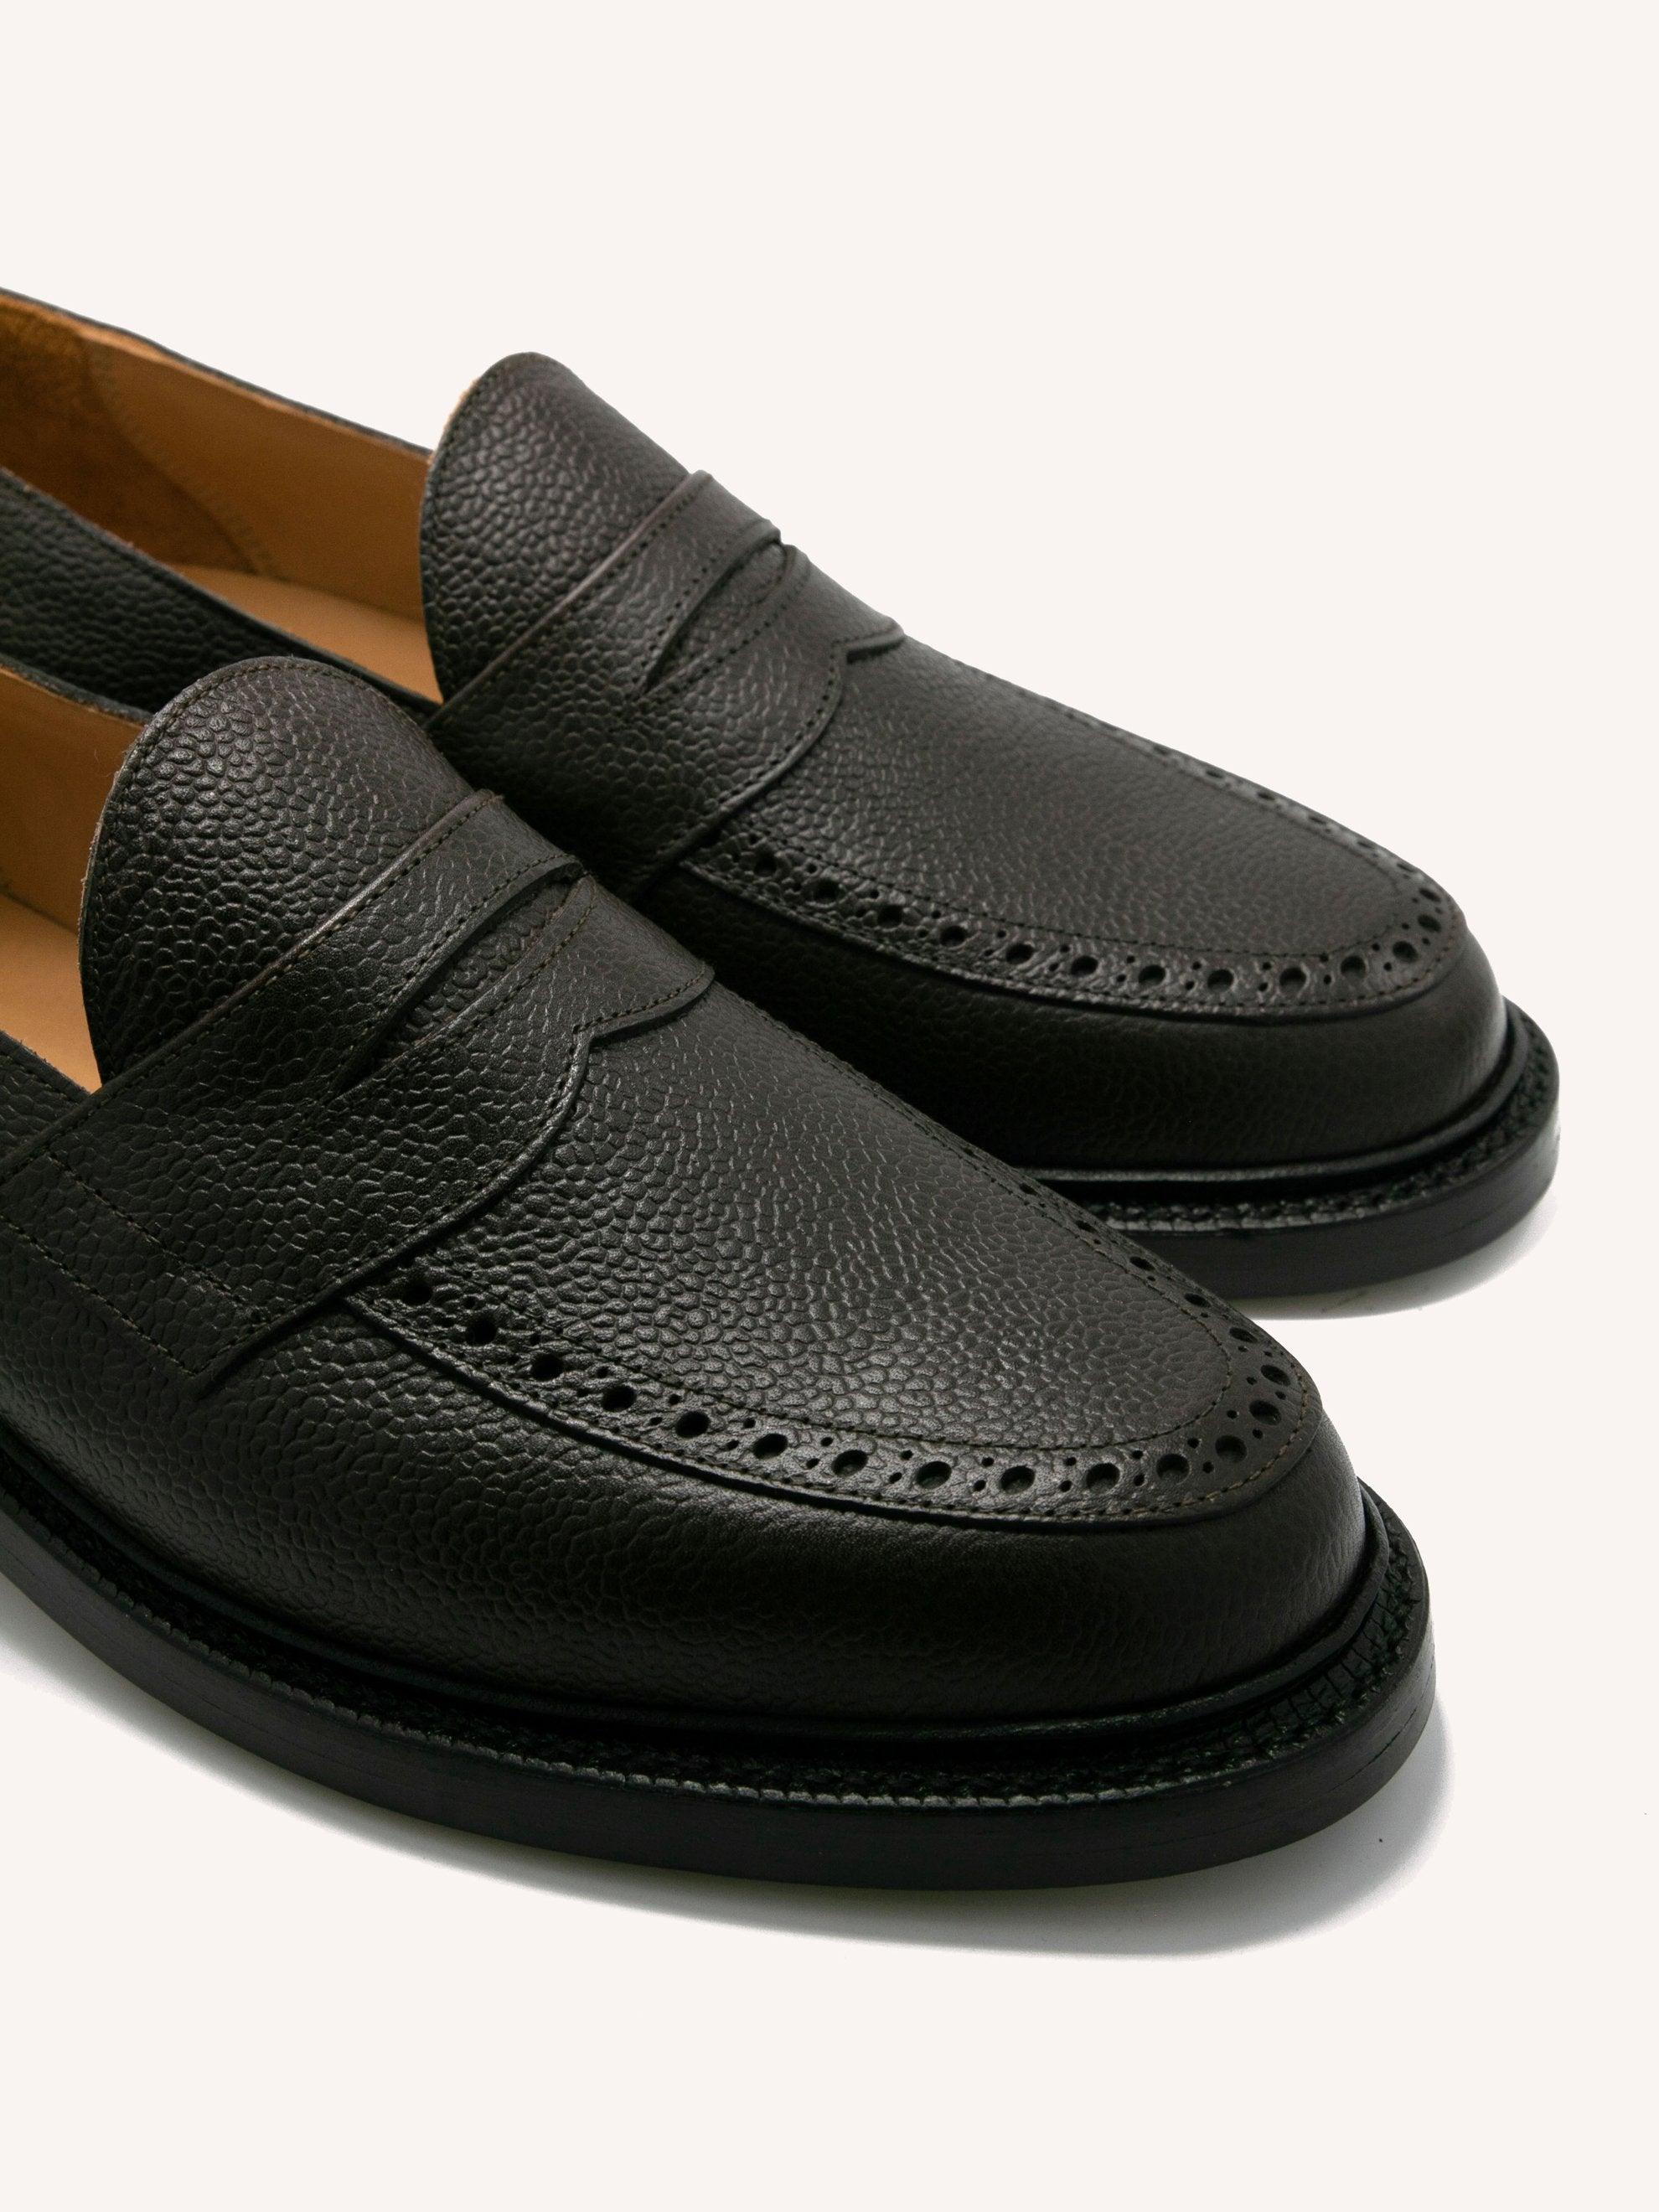 Penny Loafers (Leather Sole/Pebble Grain)